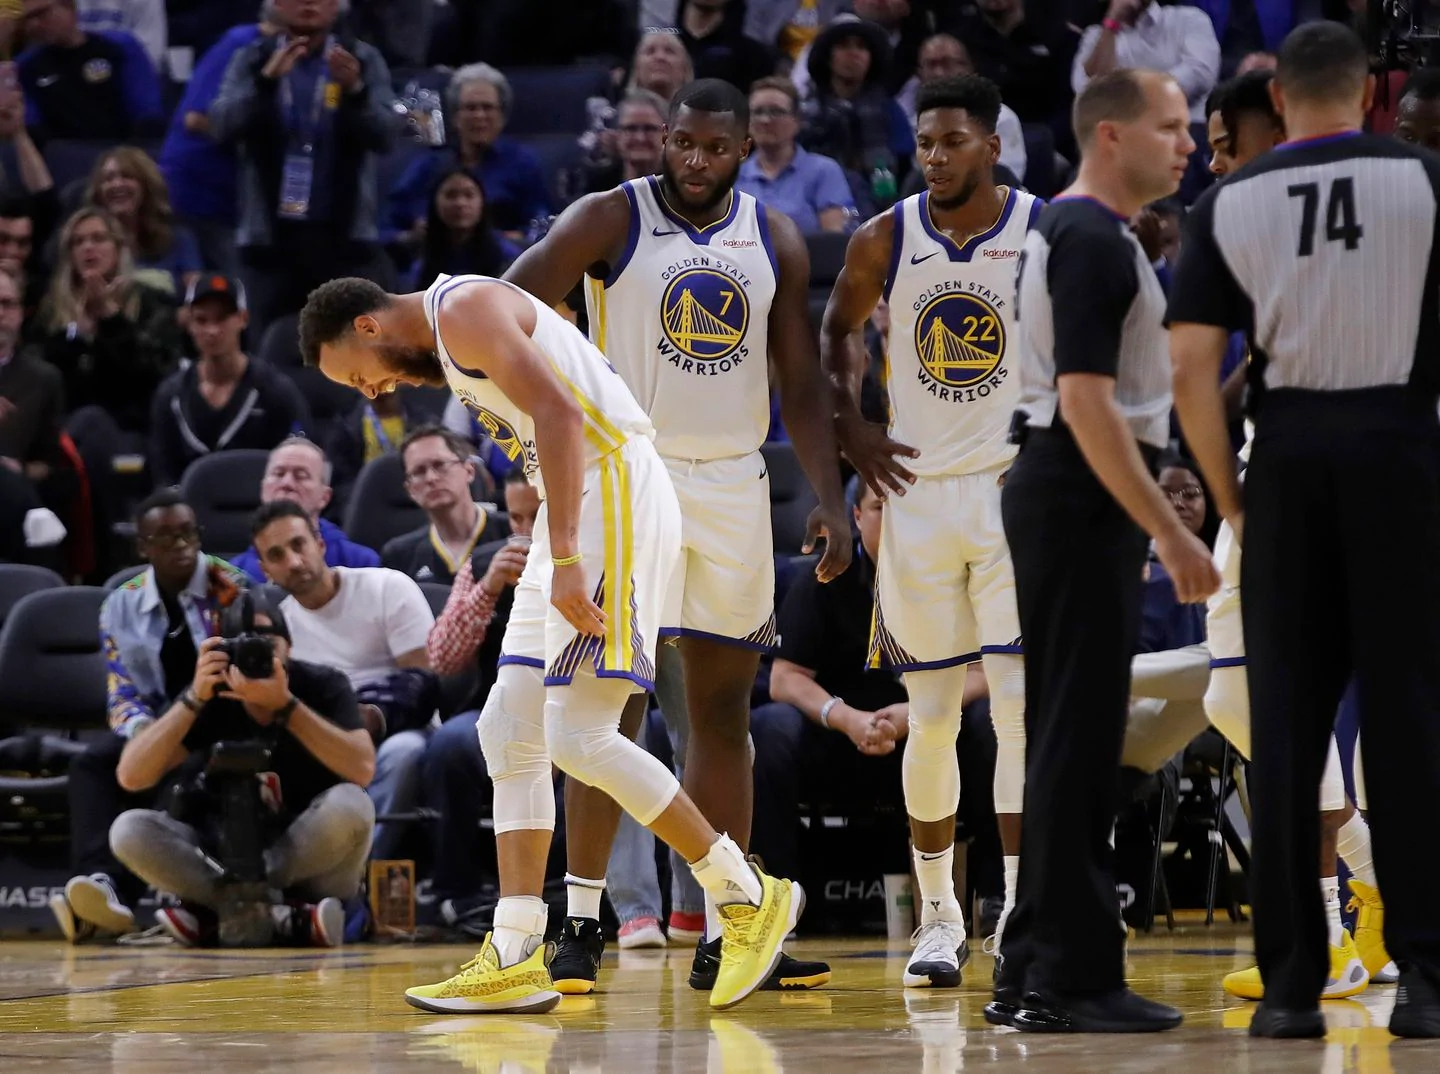 Stephen Curry infortunio mano rotta